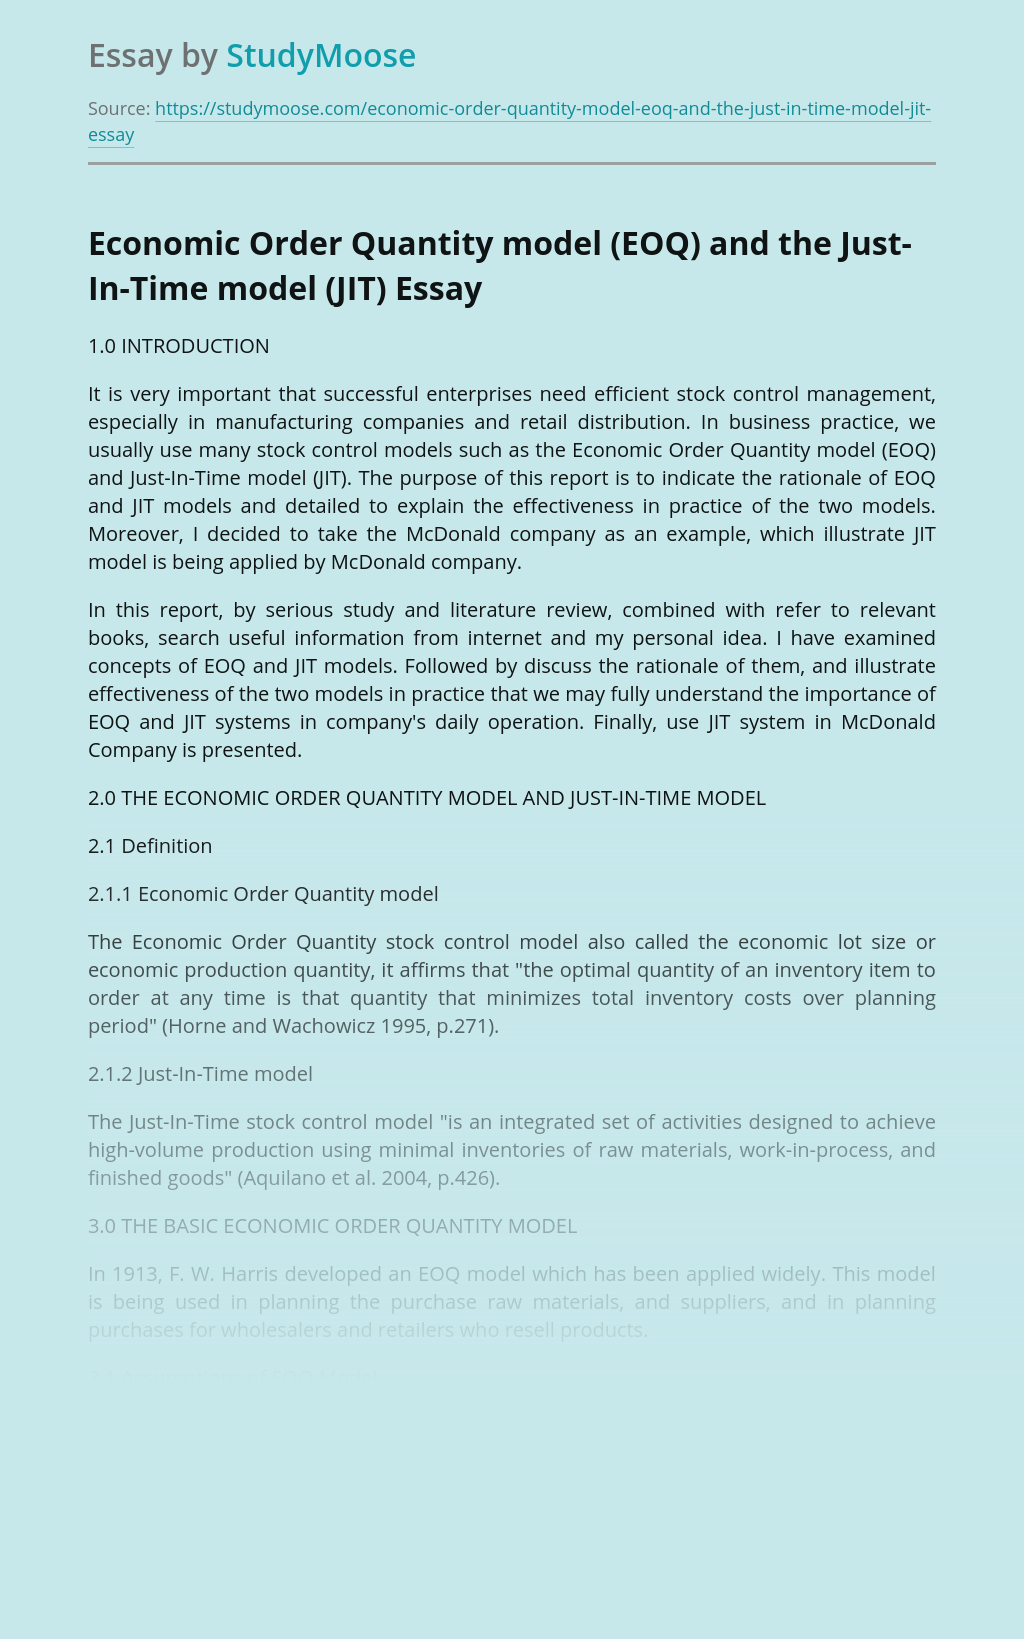 Economic Order Quantity model (EOQ) and the Just-In-Time model (JIT)